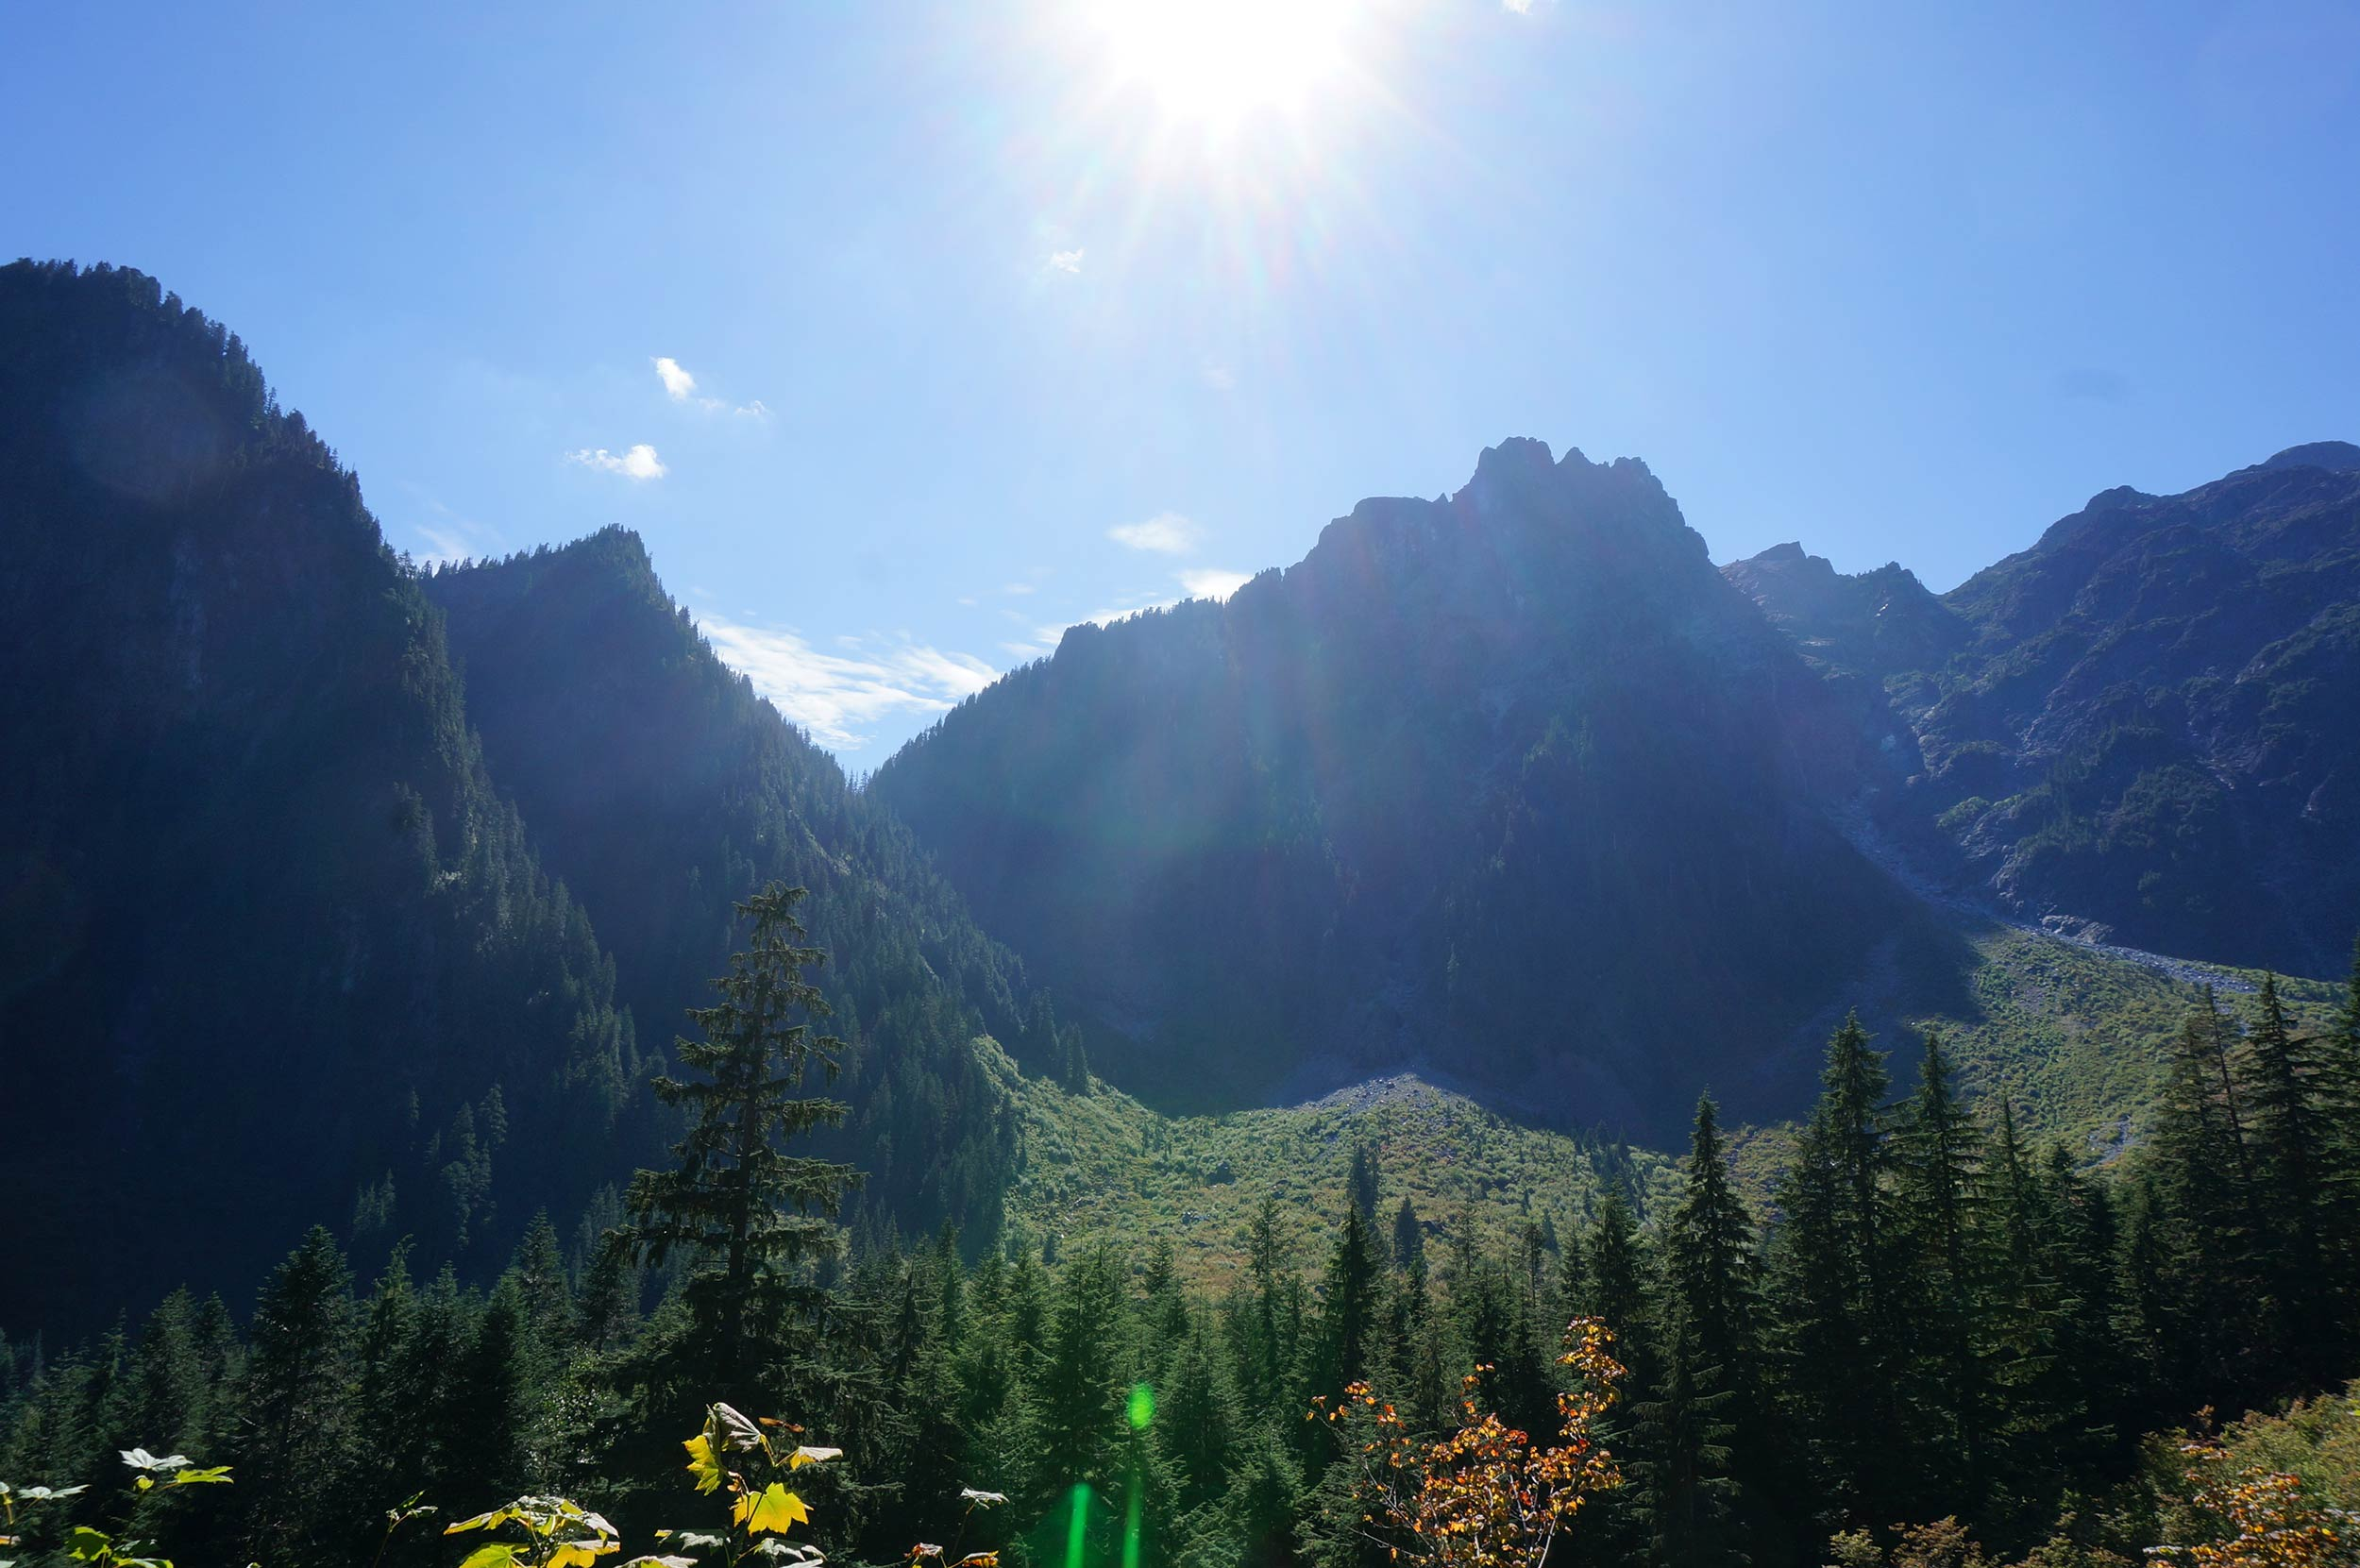 golden_ears_hike_mountains.jpg